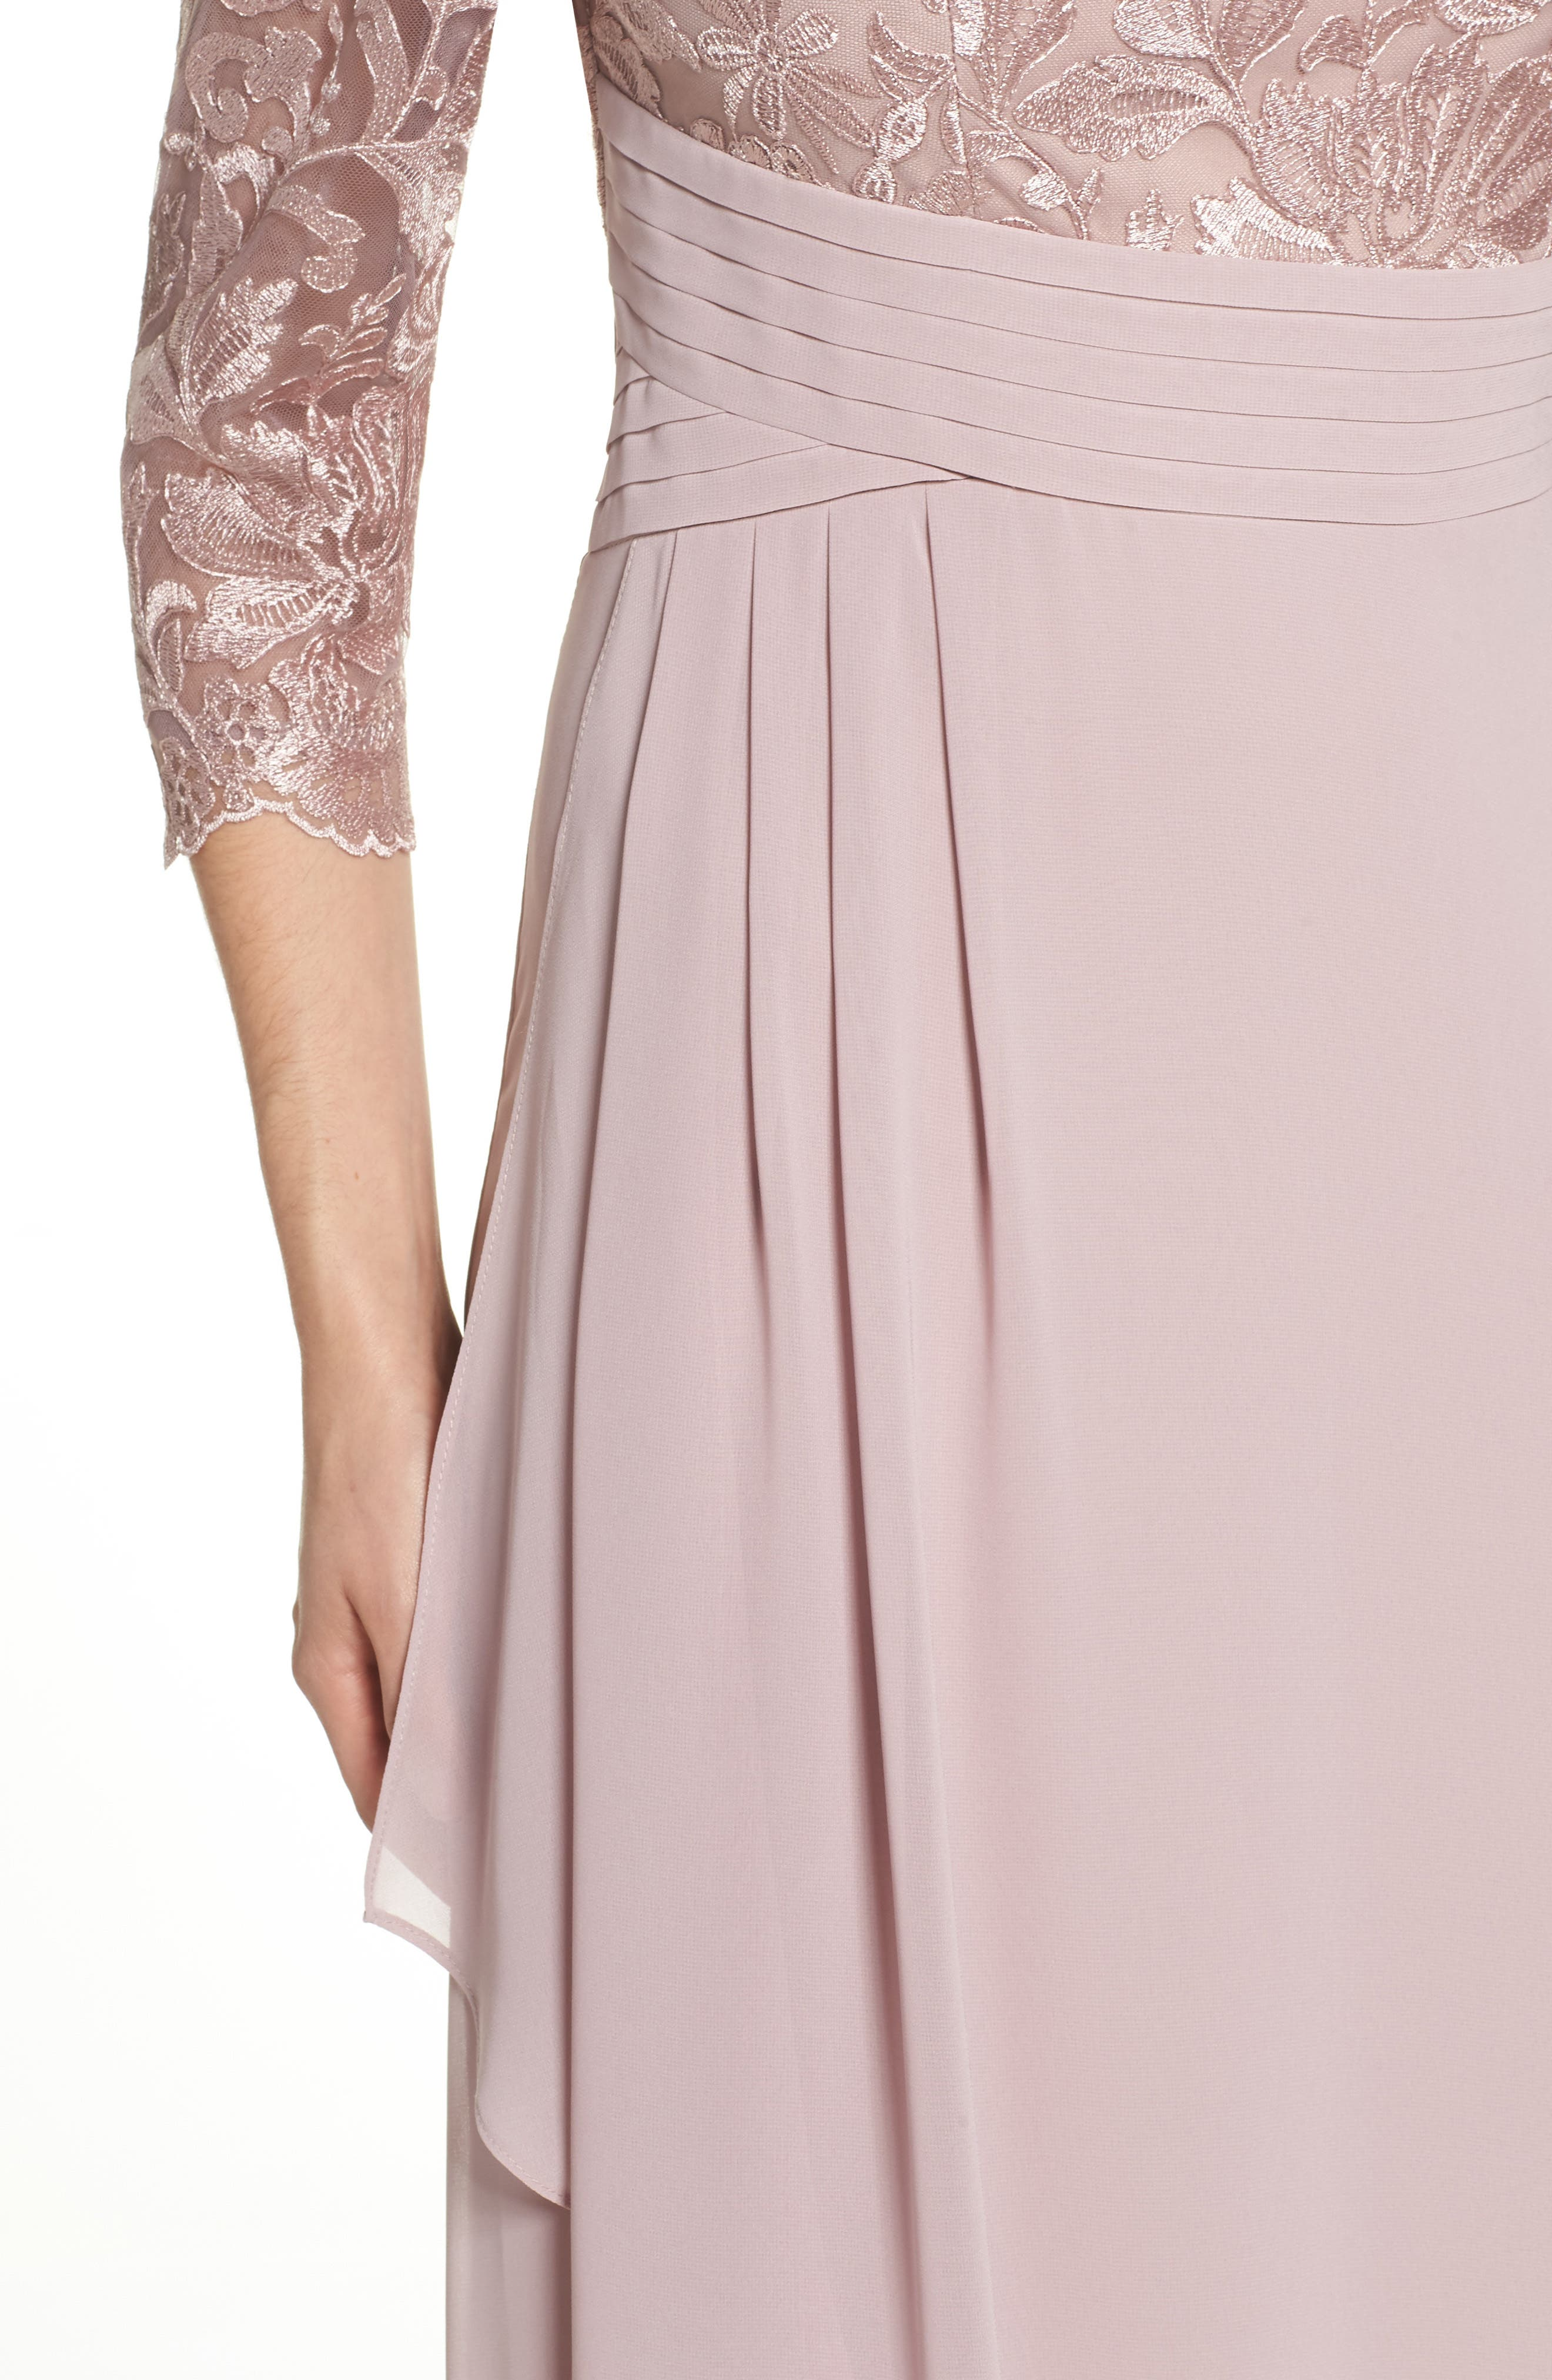 Embroidered A-Line Gown,                             Alternate thumbnail 4, color,                             695